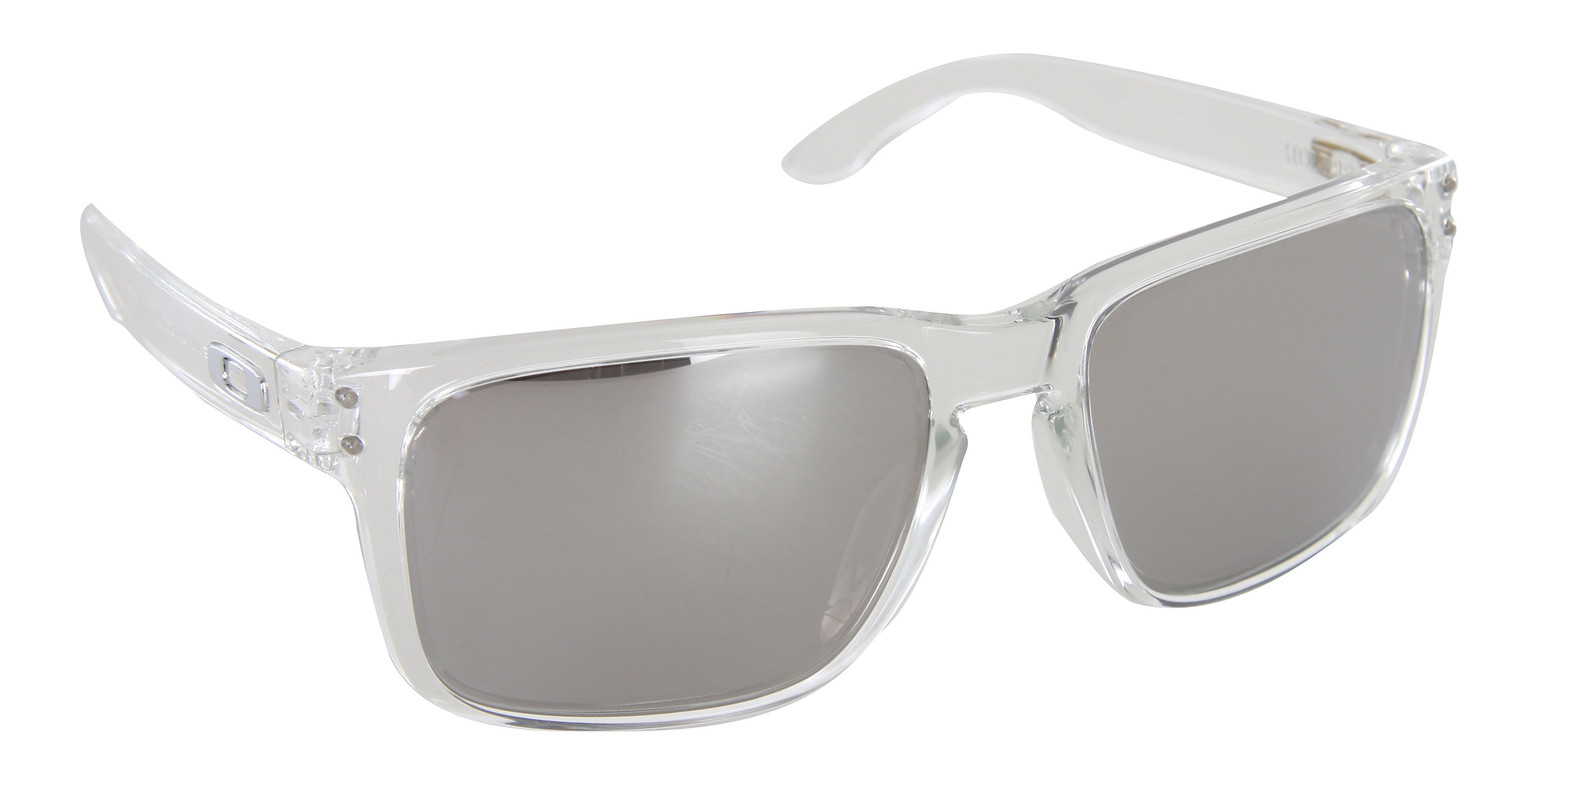 oakley-holbrook-sngls-clearchrmirid-10.jpg